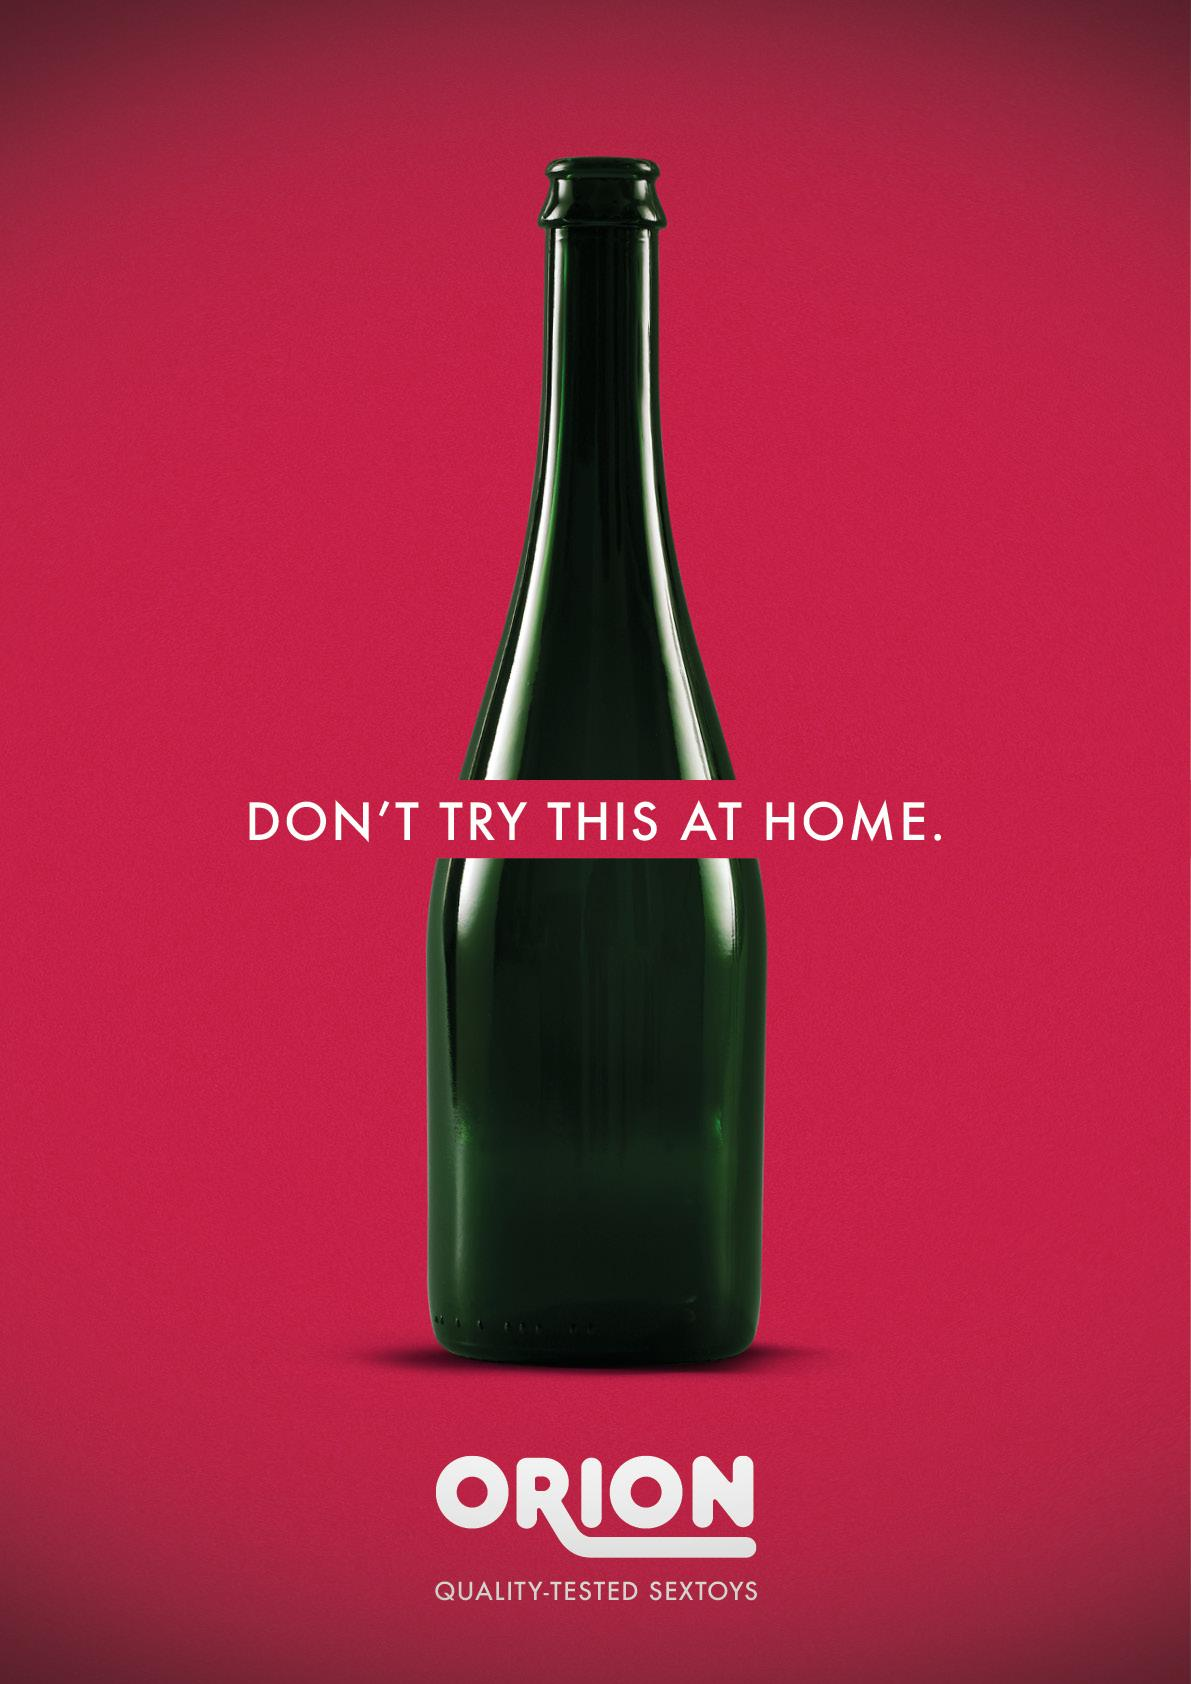 Orion Print Ad - Don't try this at home, 3